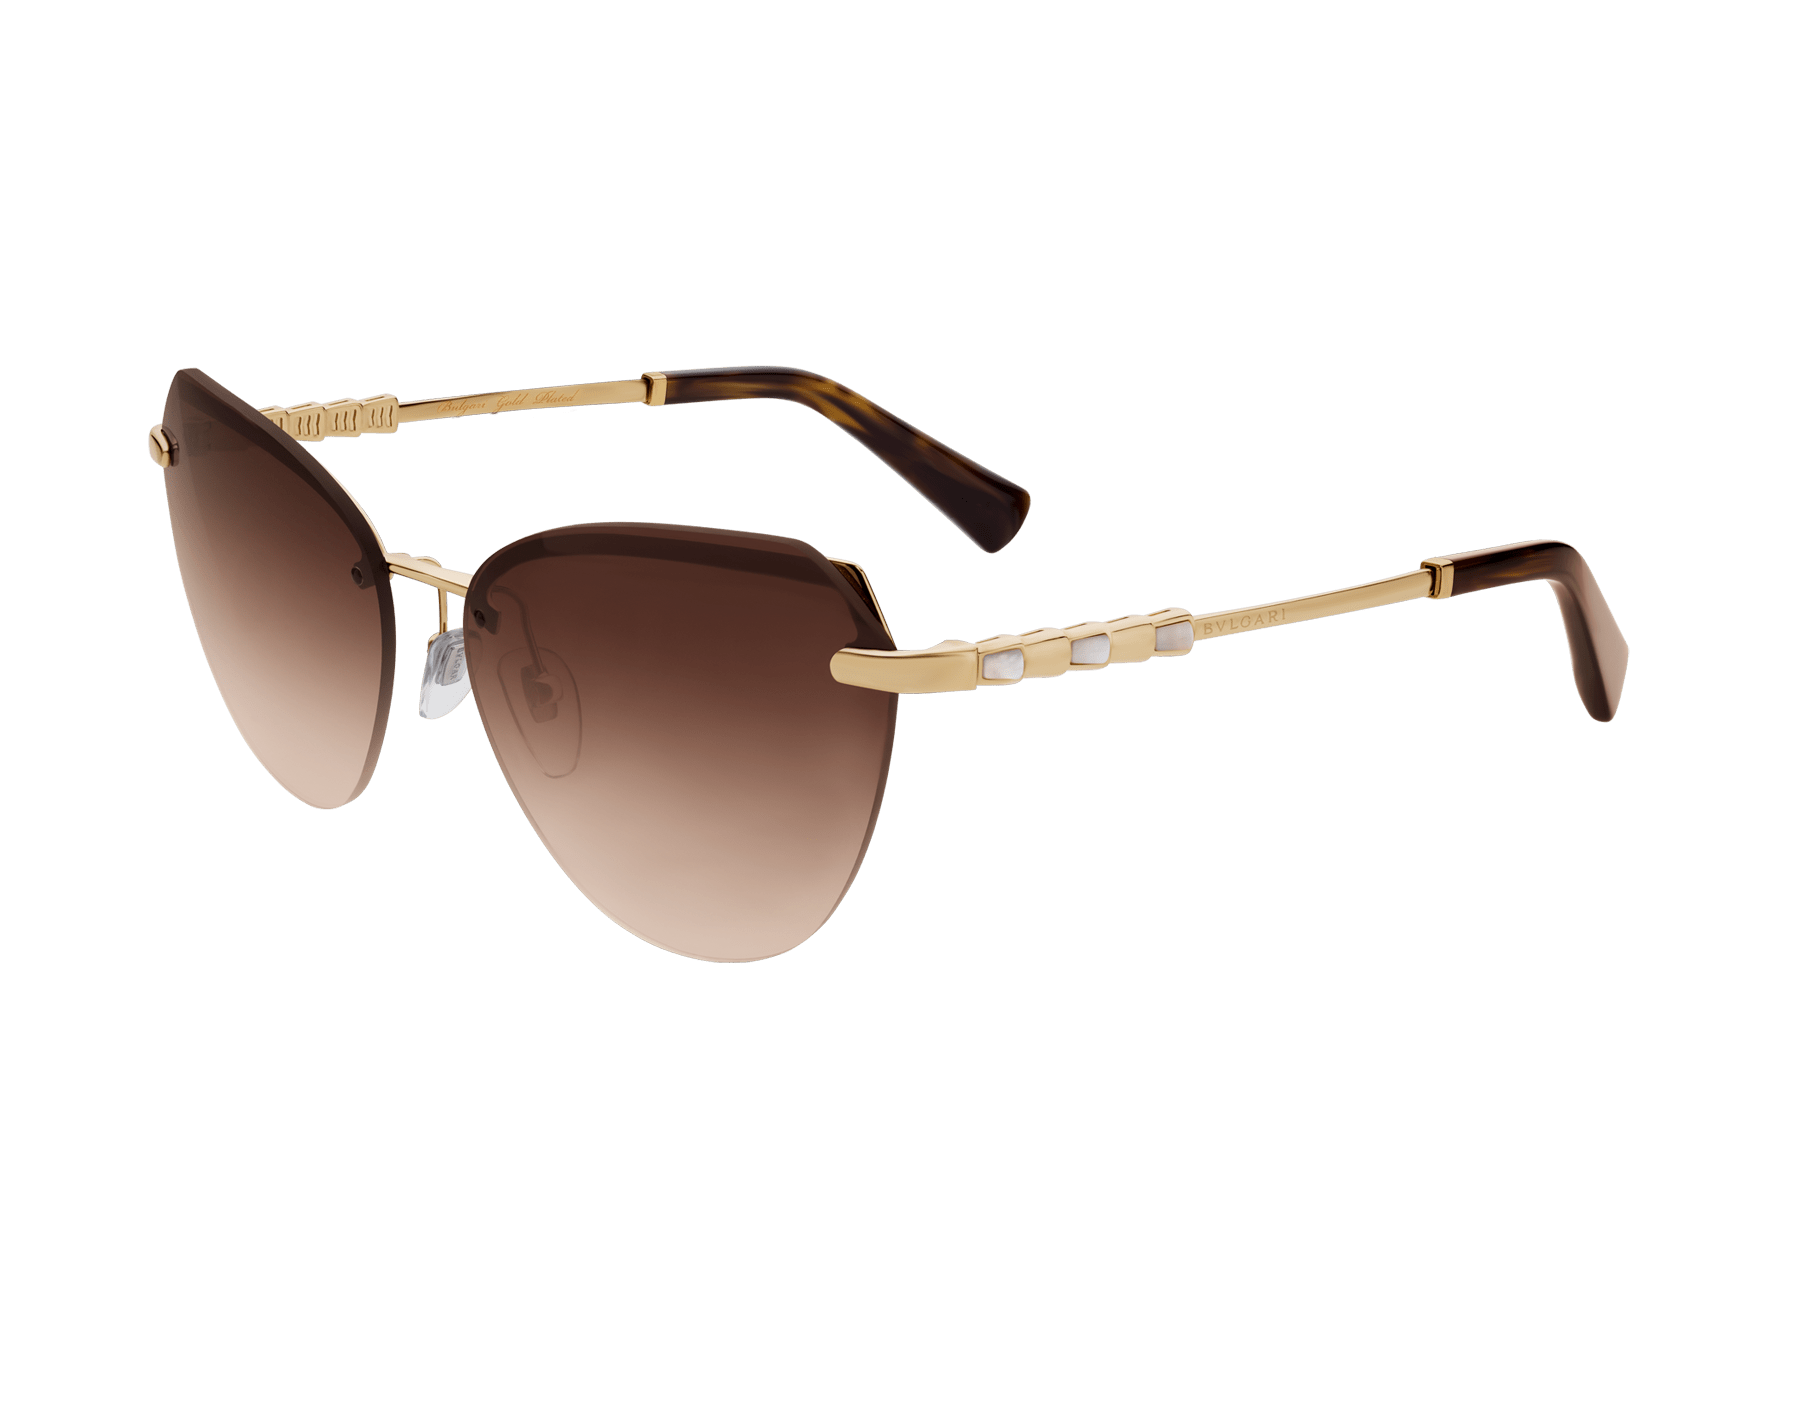 Bulgari Le Gemme Serpenti gold plated cat-eye sunglasses with mother-of-pearl inserts. 903906 image 1